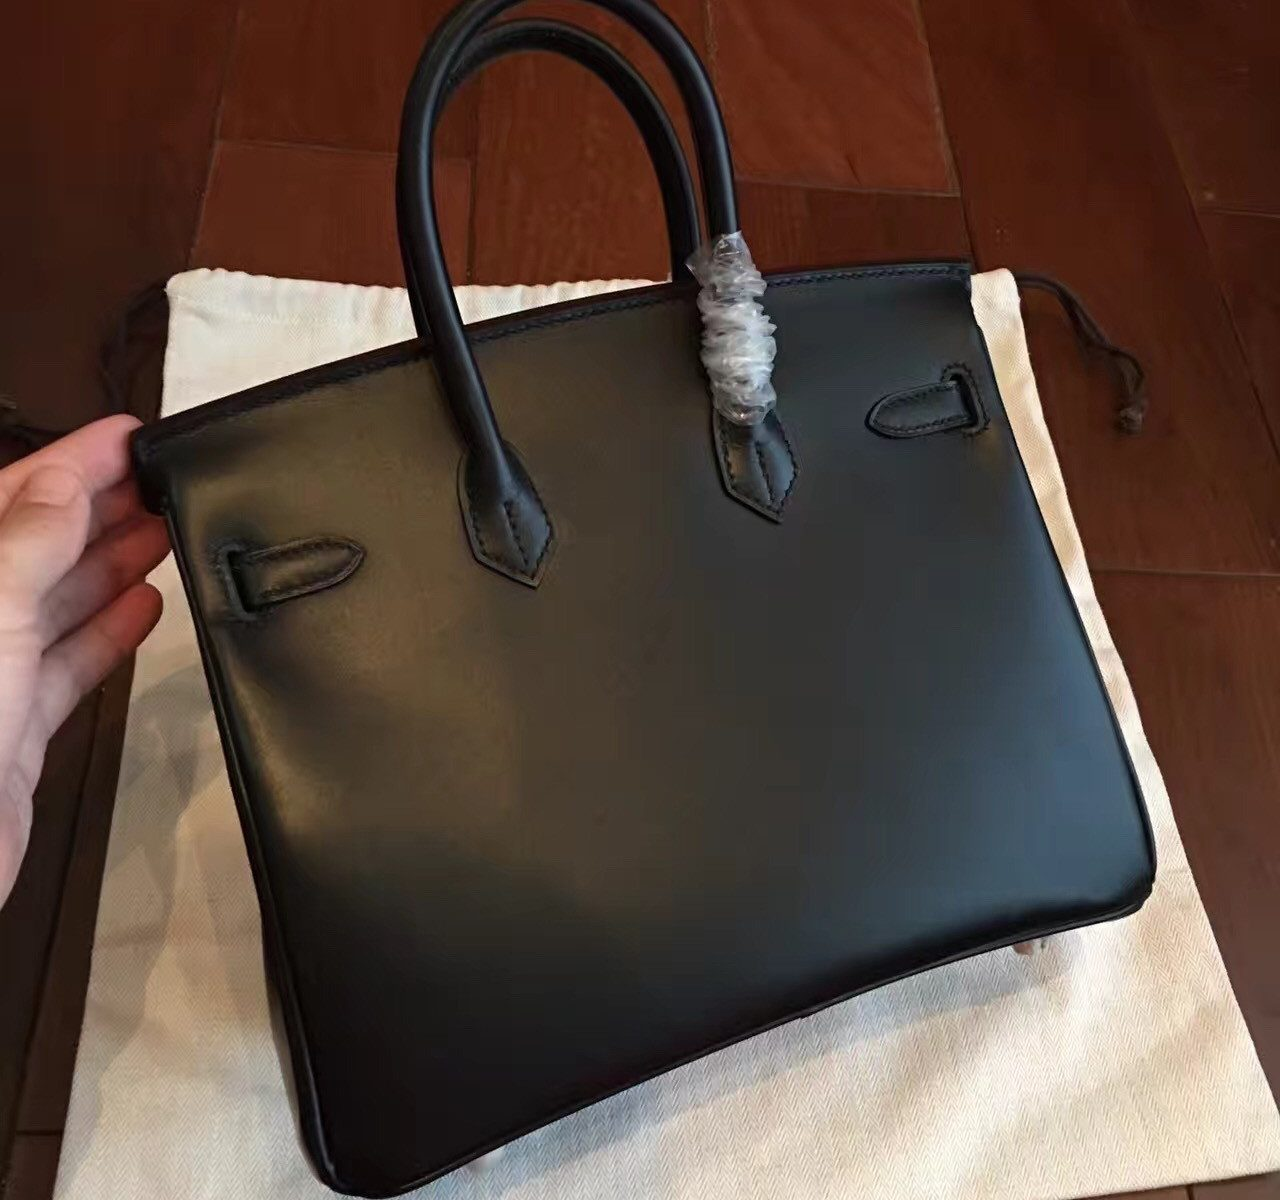 657d99b1e29 Home   Hermes Imitation Birkin 25cm Handbags   Authentic Hermes Black Box  Birkin 25cm Handmade Bag Aurora